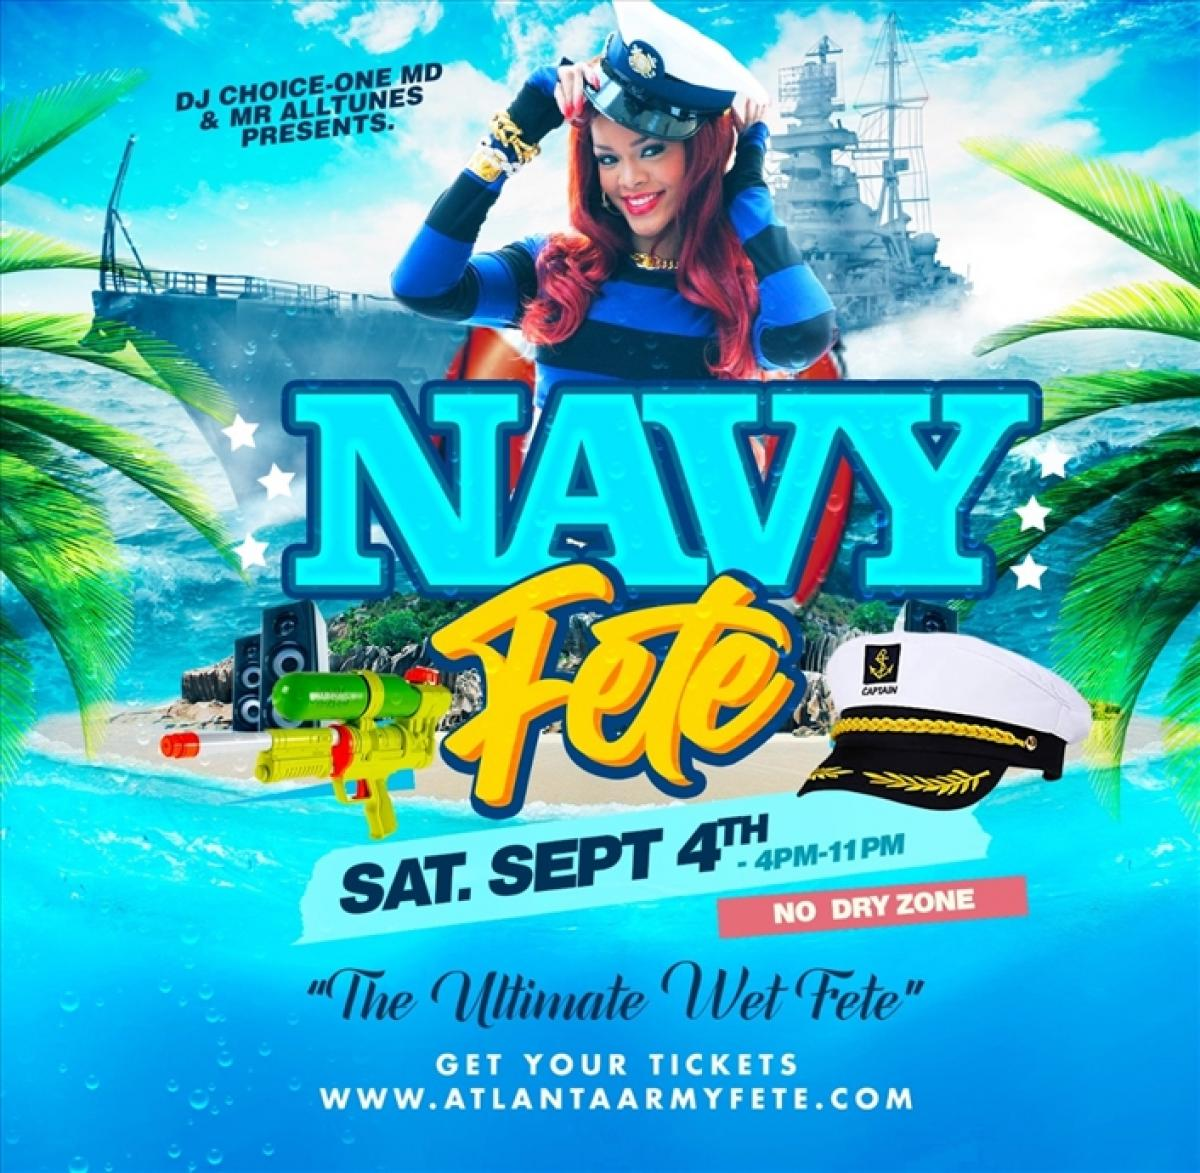 Navy Fete flyer or graphic.